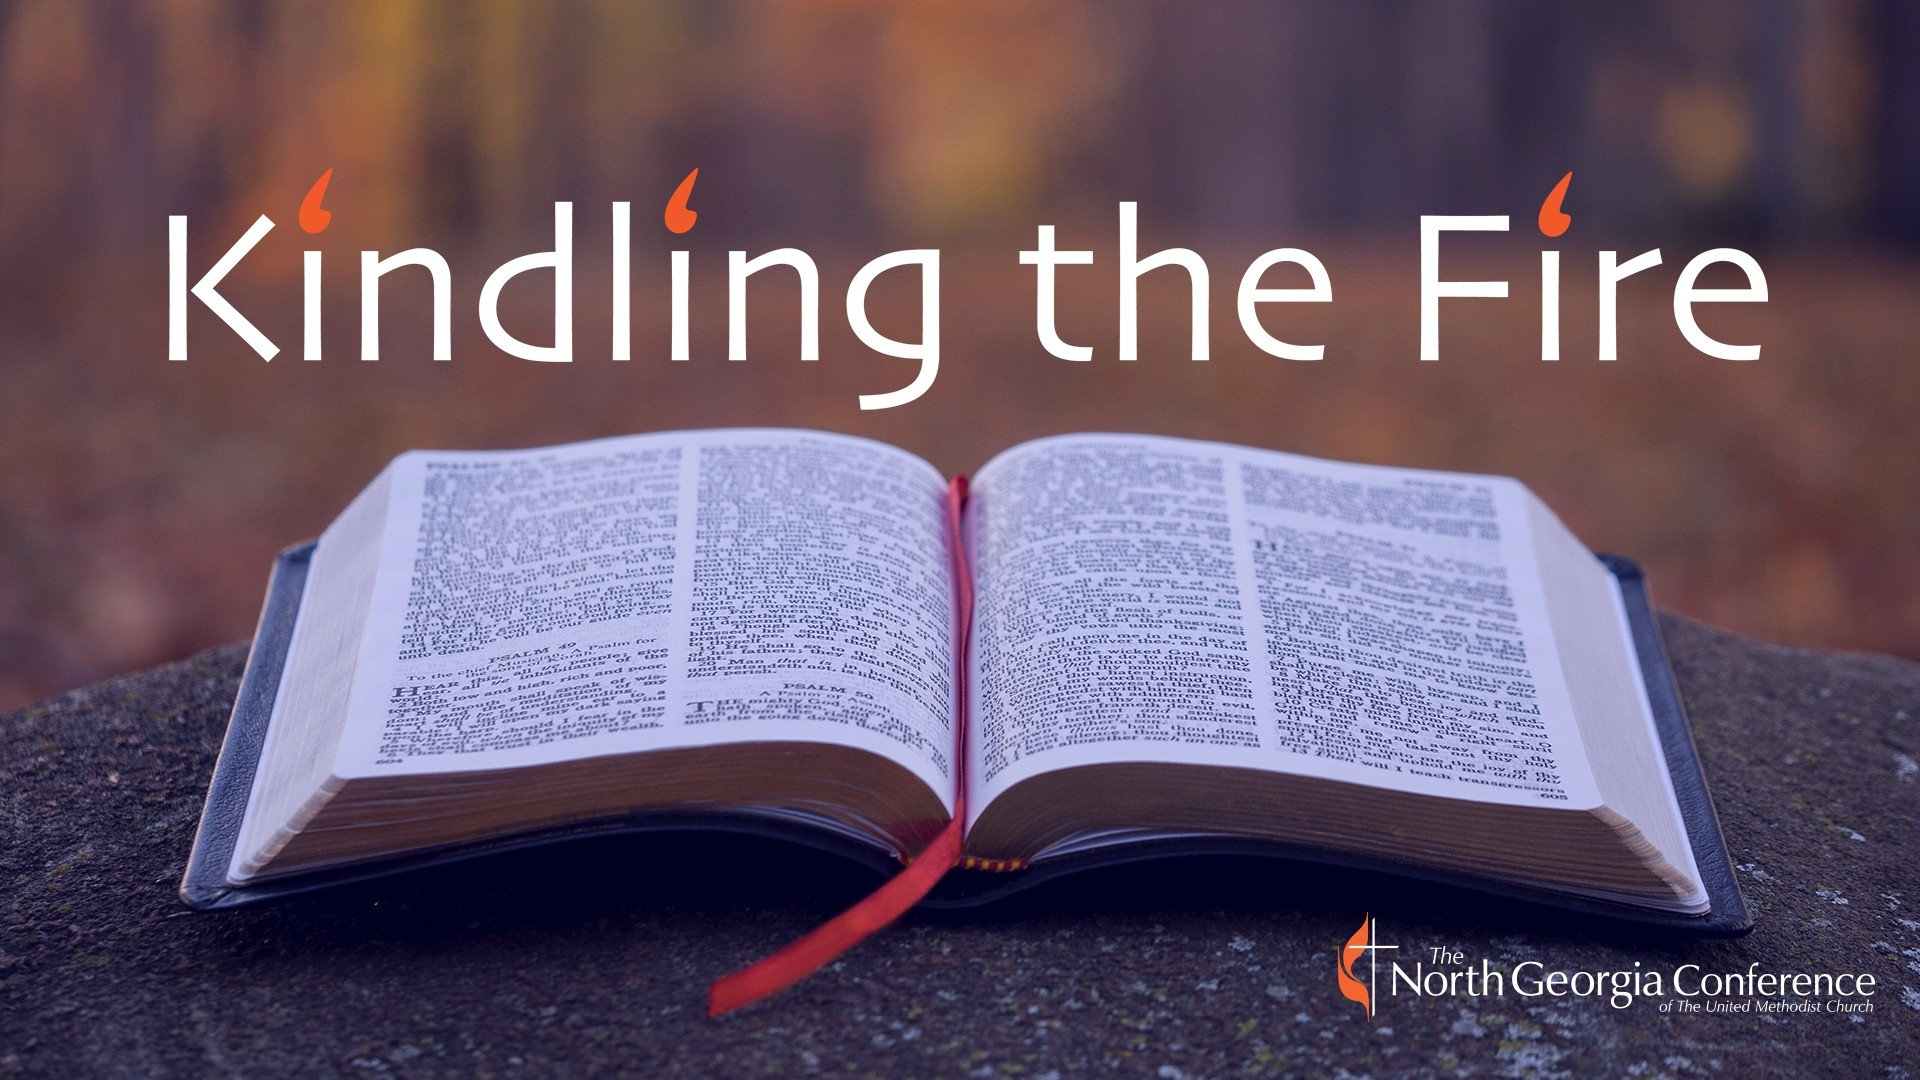 Ngumc: Kindling The Fire: Lectionary Reading Retreat For Clergy  Lectionary Readings 2020 United Methodist